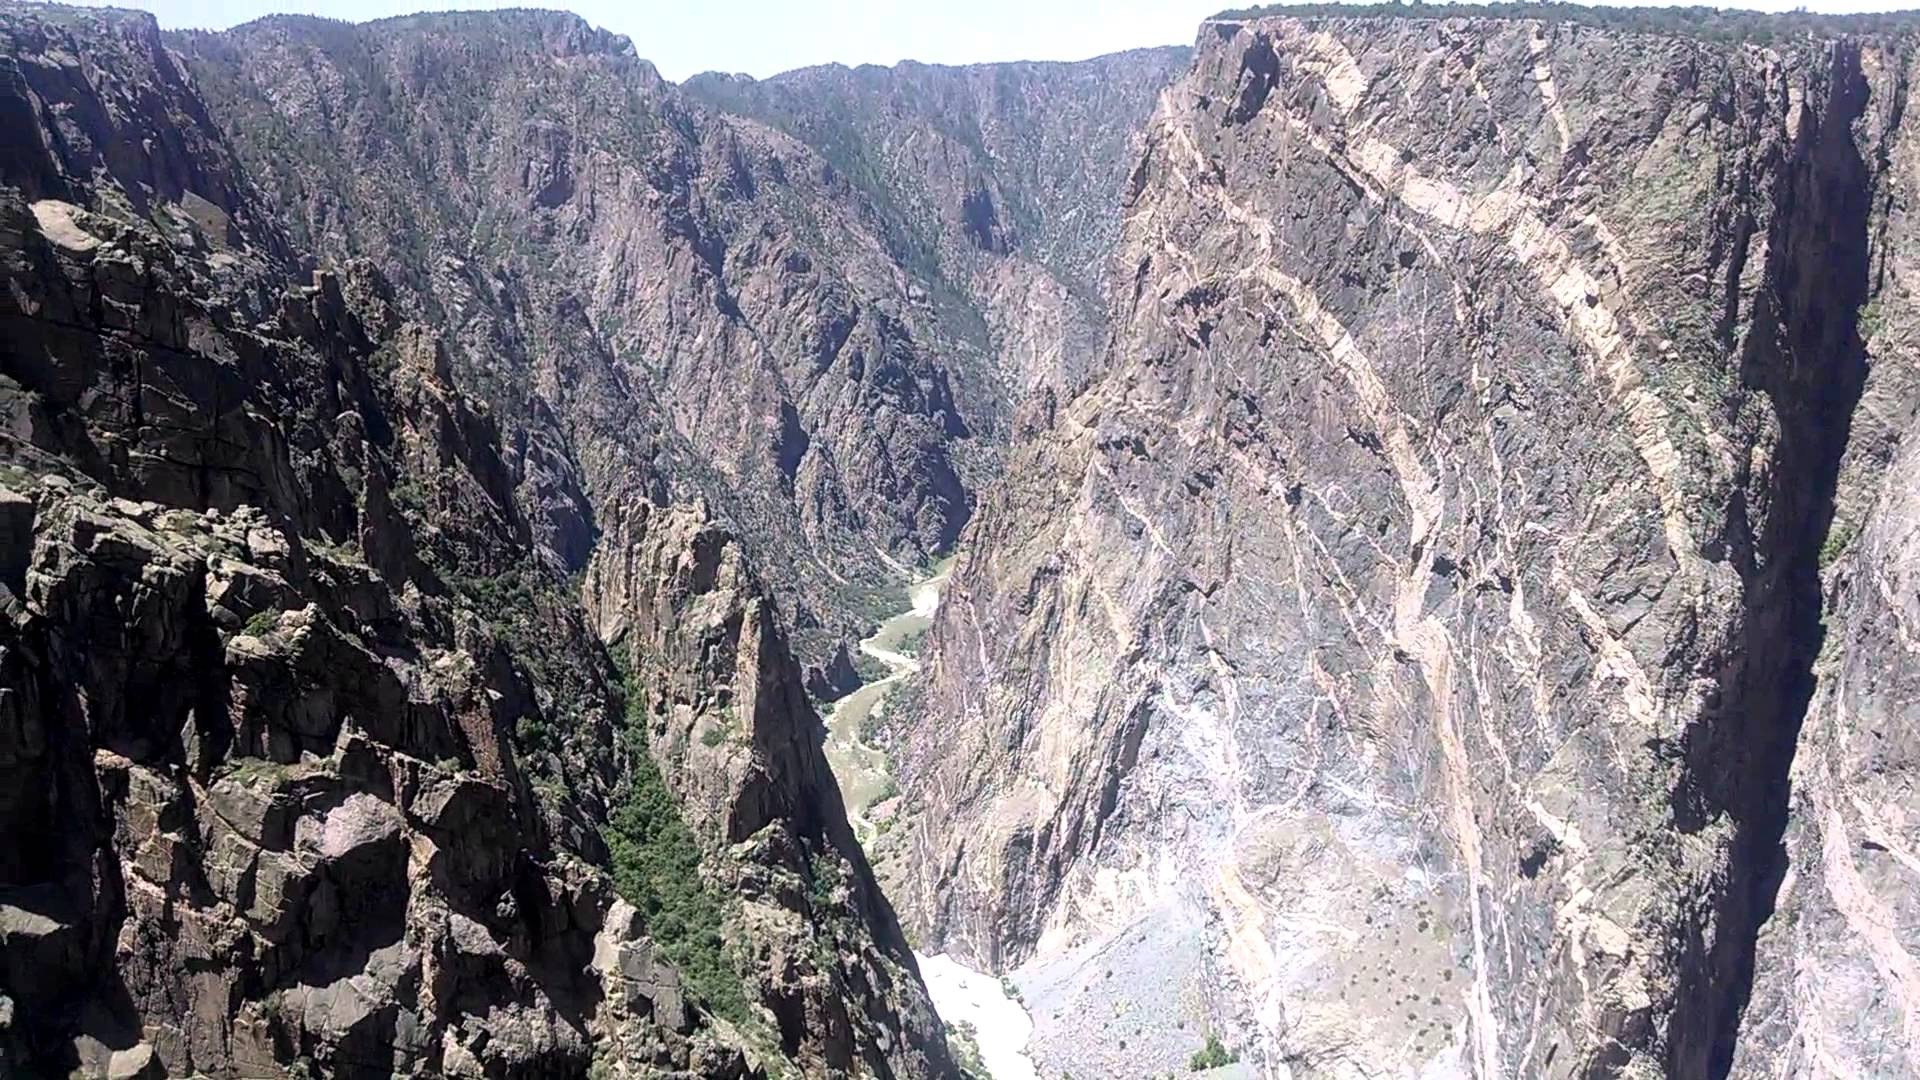 06 06 14 A Black Canyon of the Gunnison Rim Drive 118a